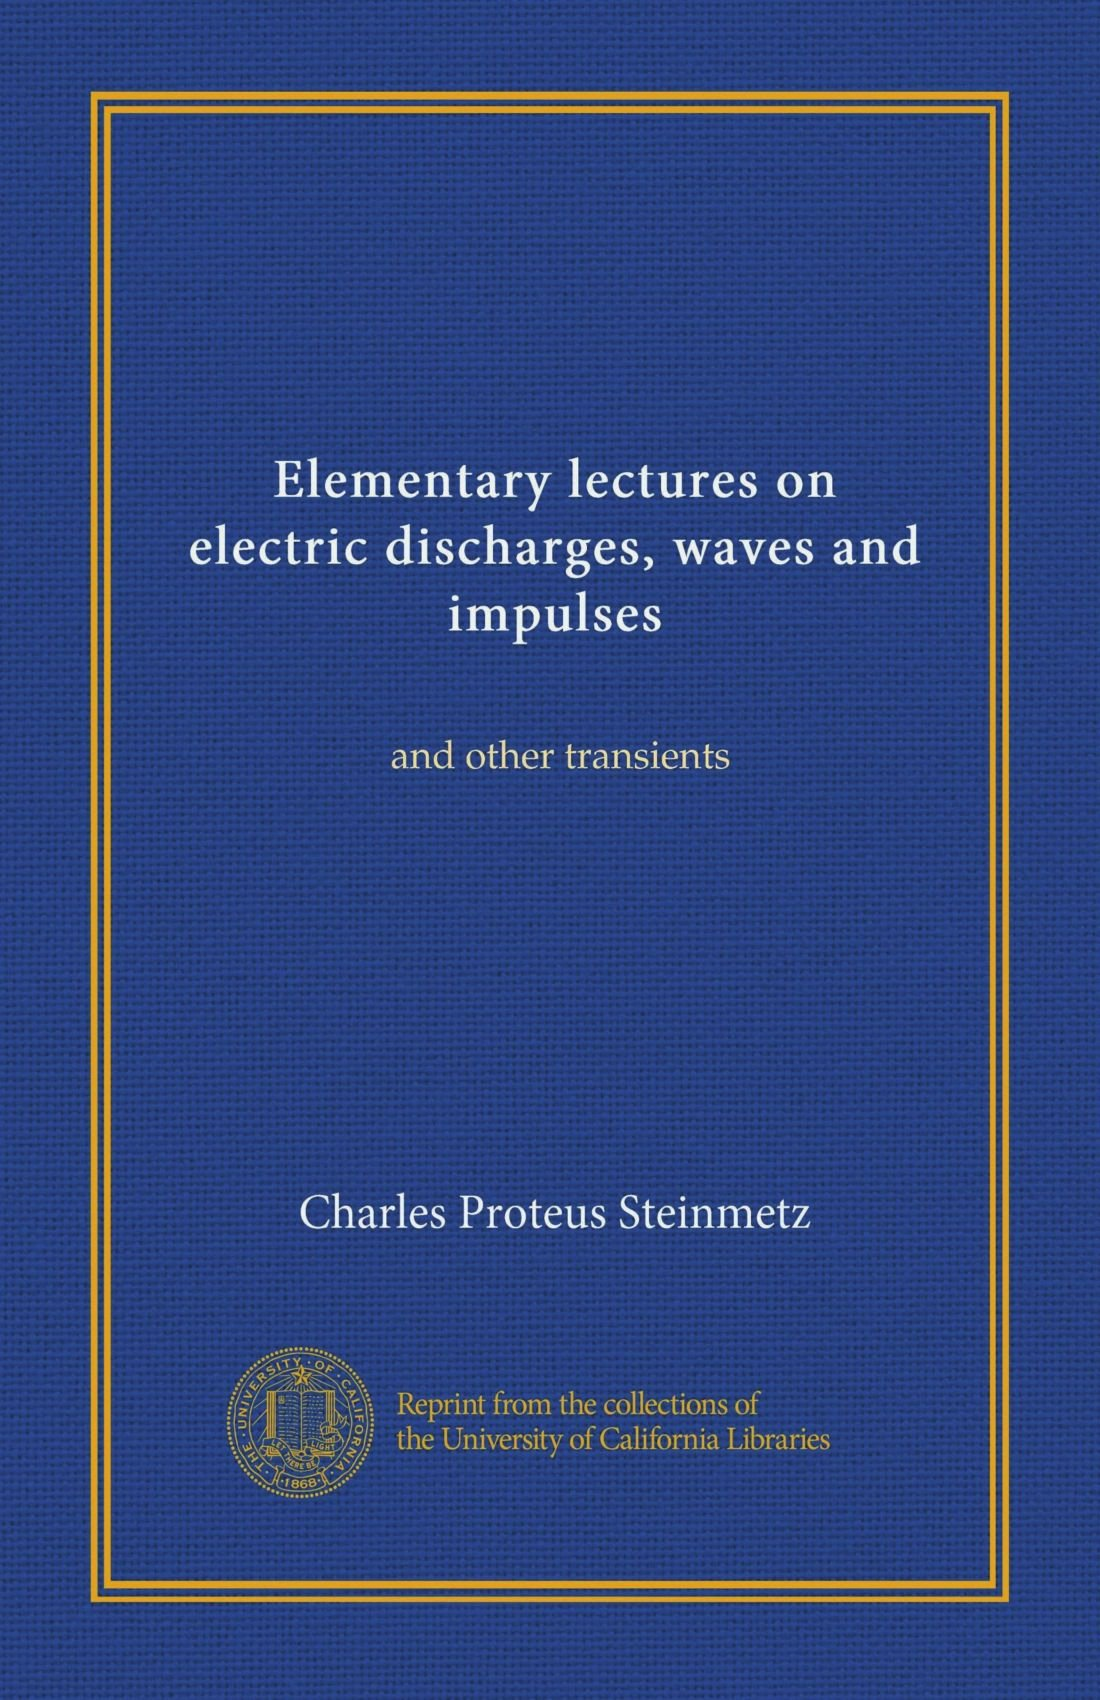 Elementary lectures on electric discharges, waves and impulses: and other transients